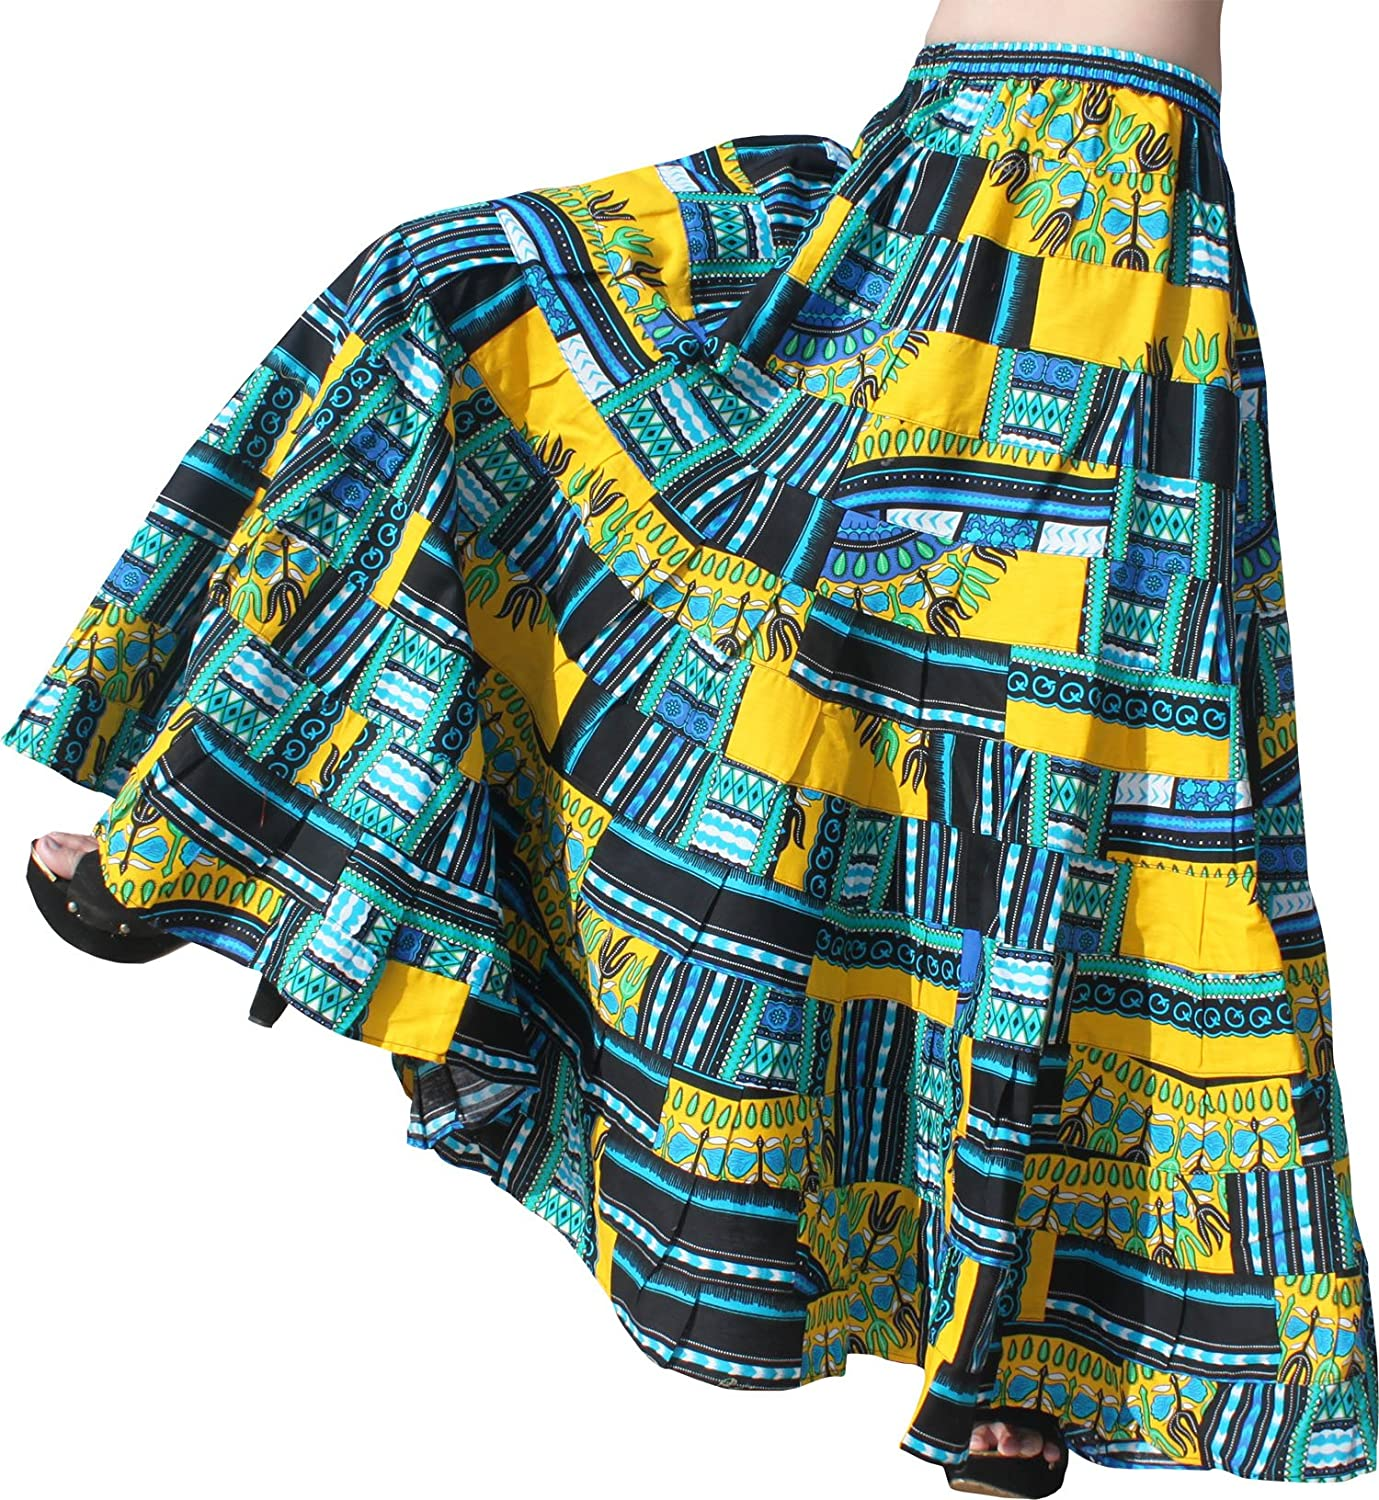 Raan Pah Muang Skirt 14 Layer Flowing African Dashiki in Bright Multi color Patches